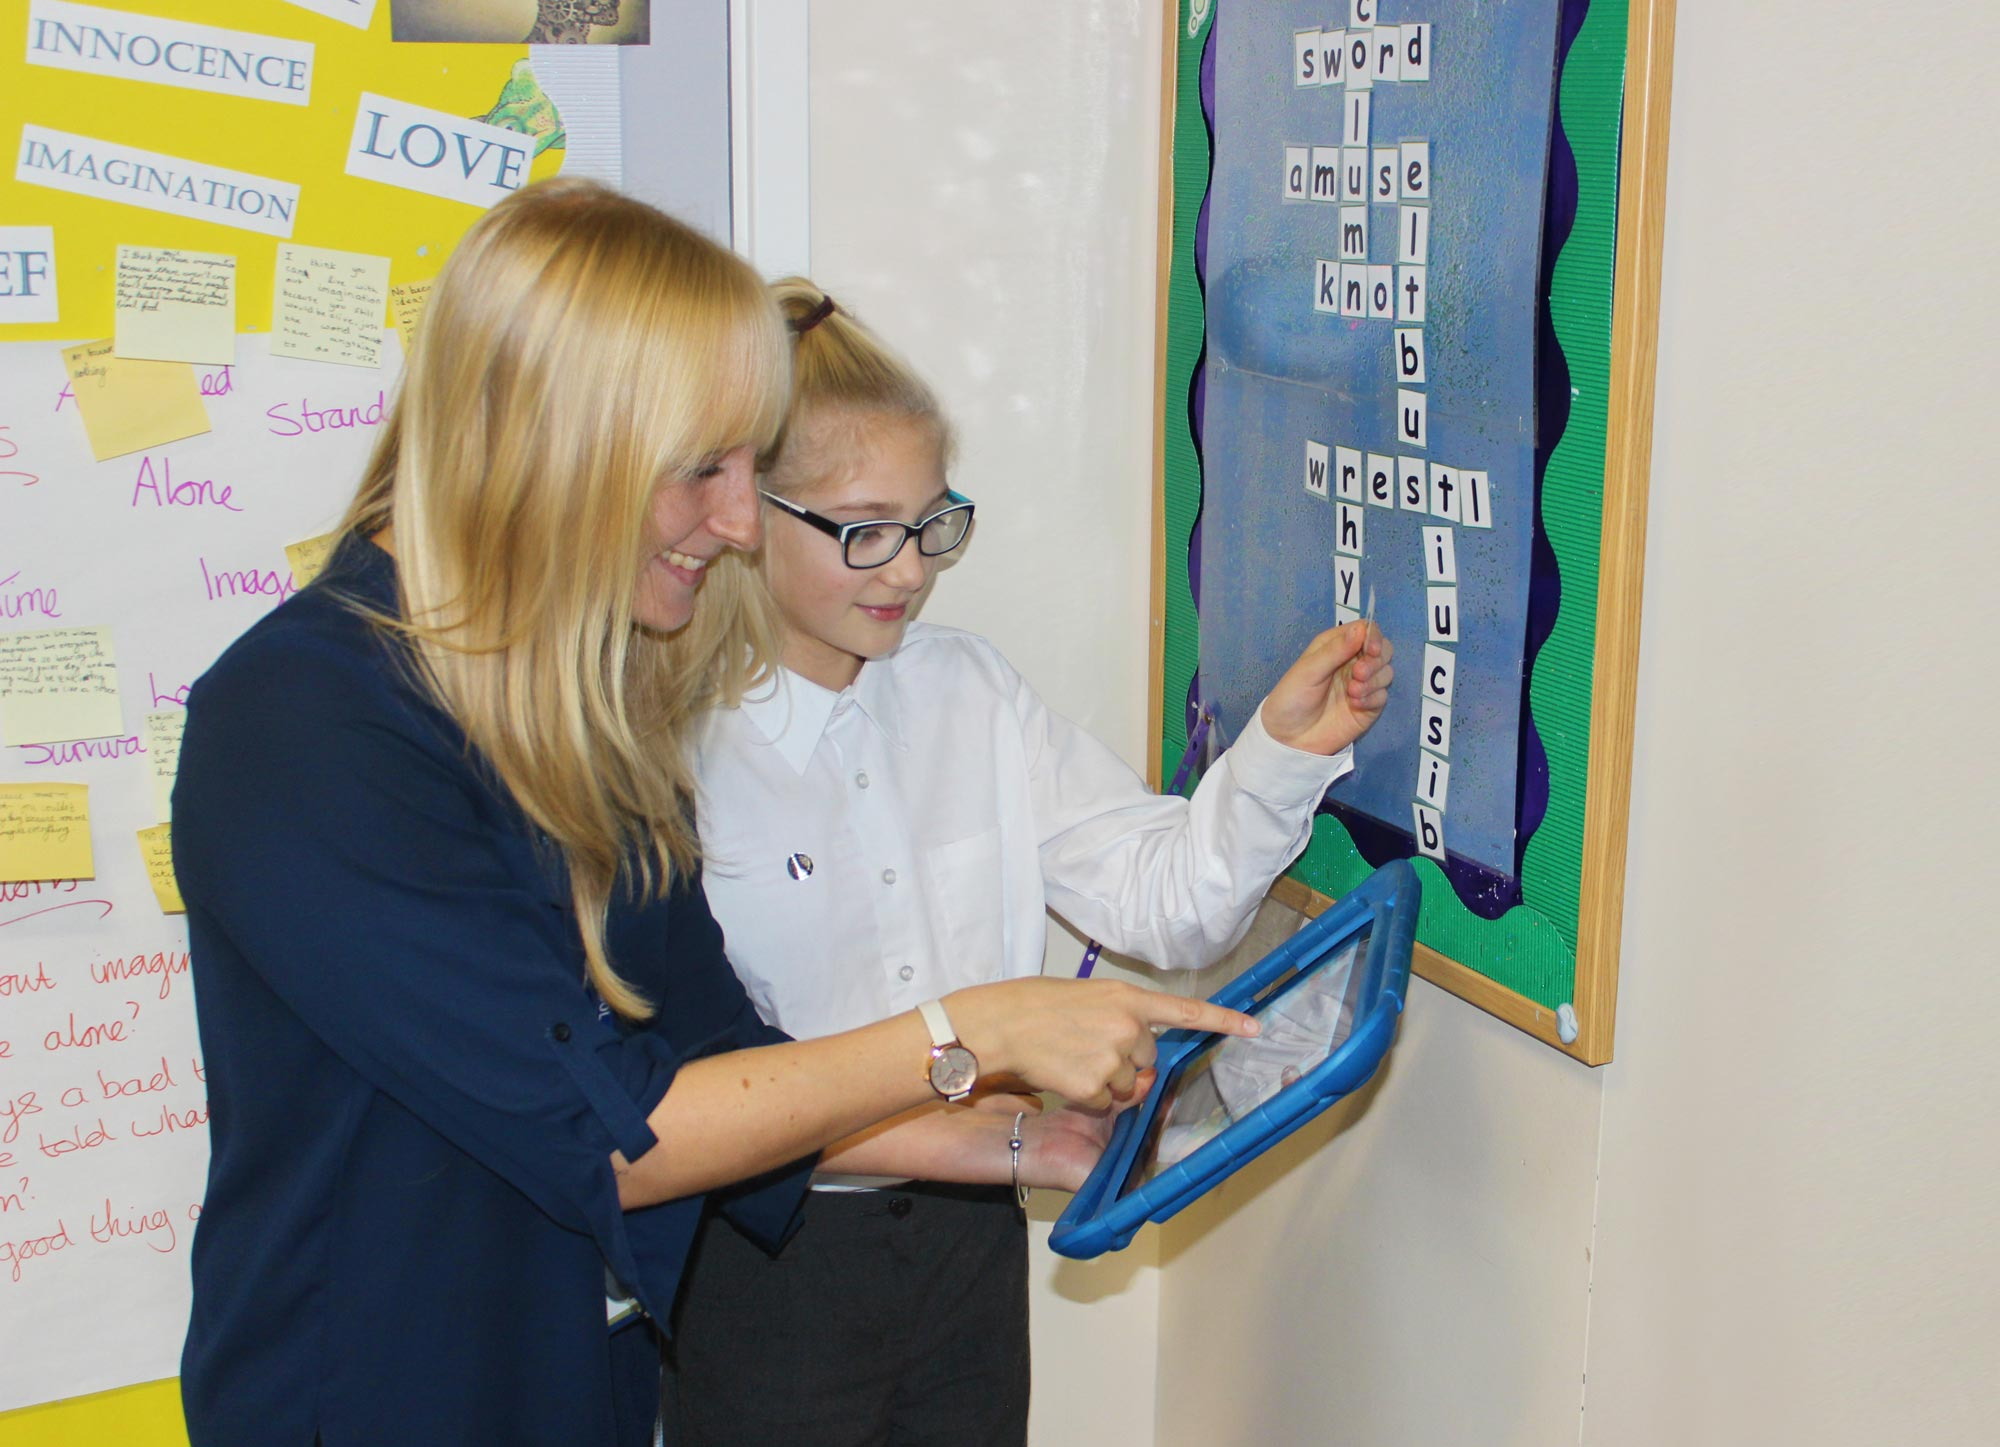 Learning spelling with the help of a tablet